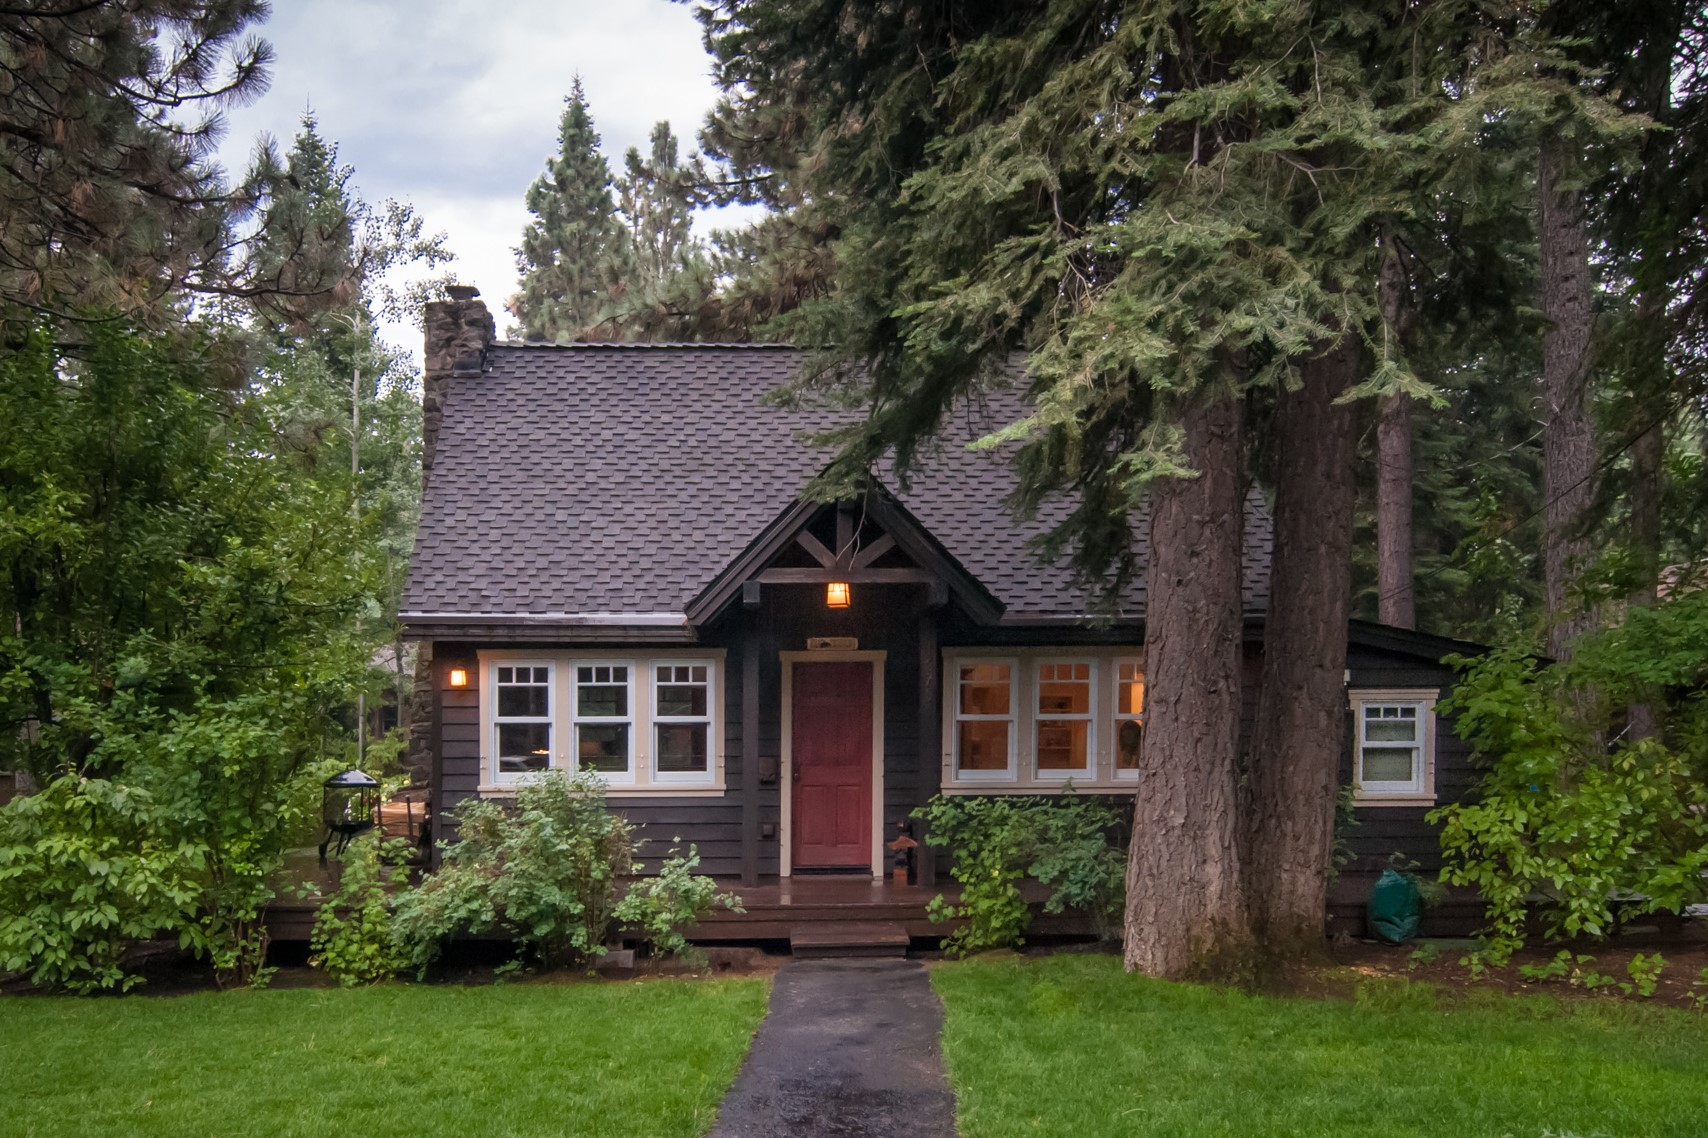 cabins the cc iha tahoe lake short rentals term rent vacations on direct little south with your for